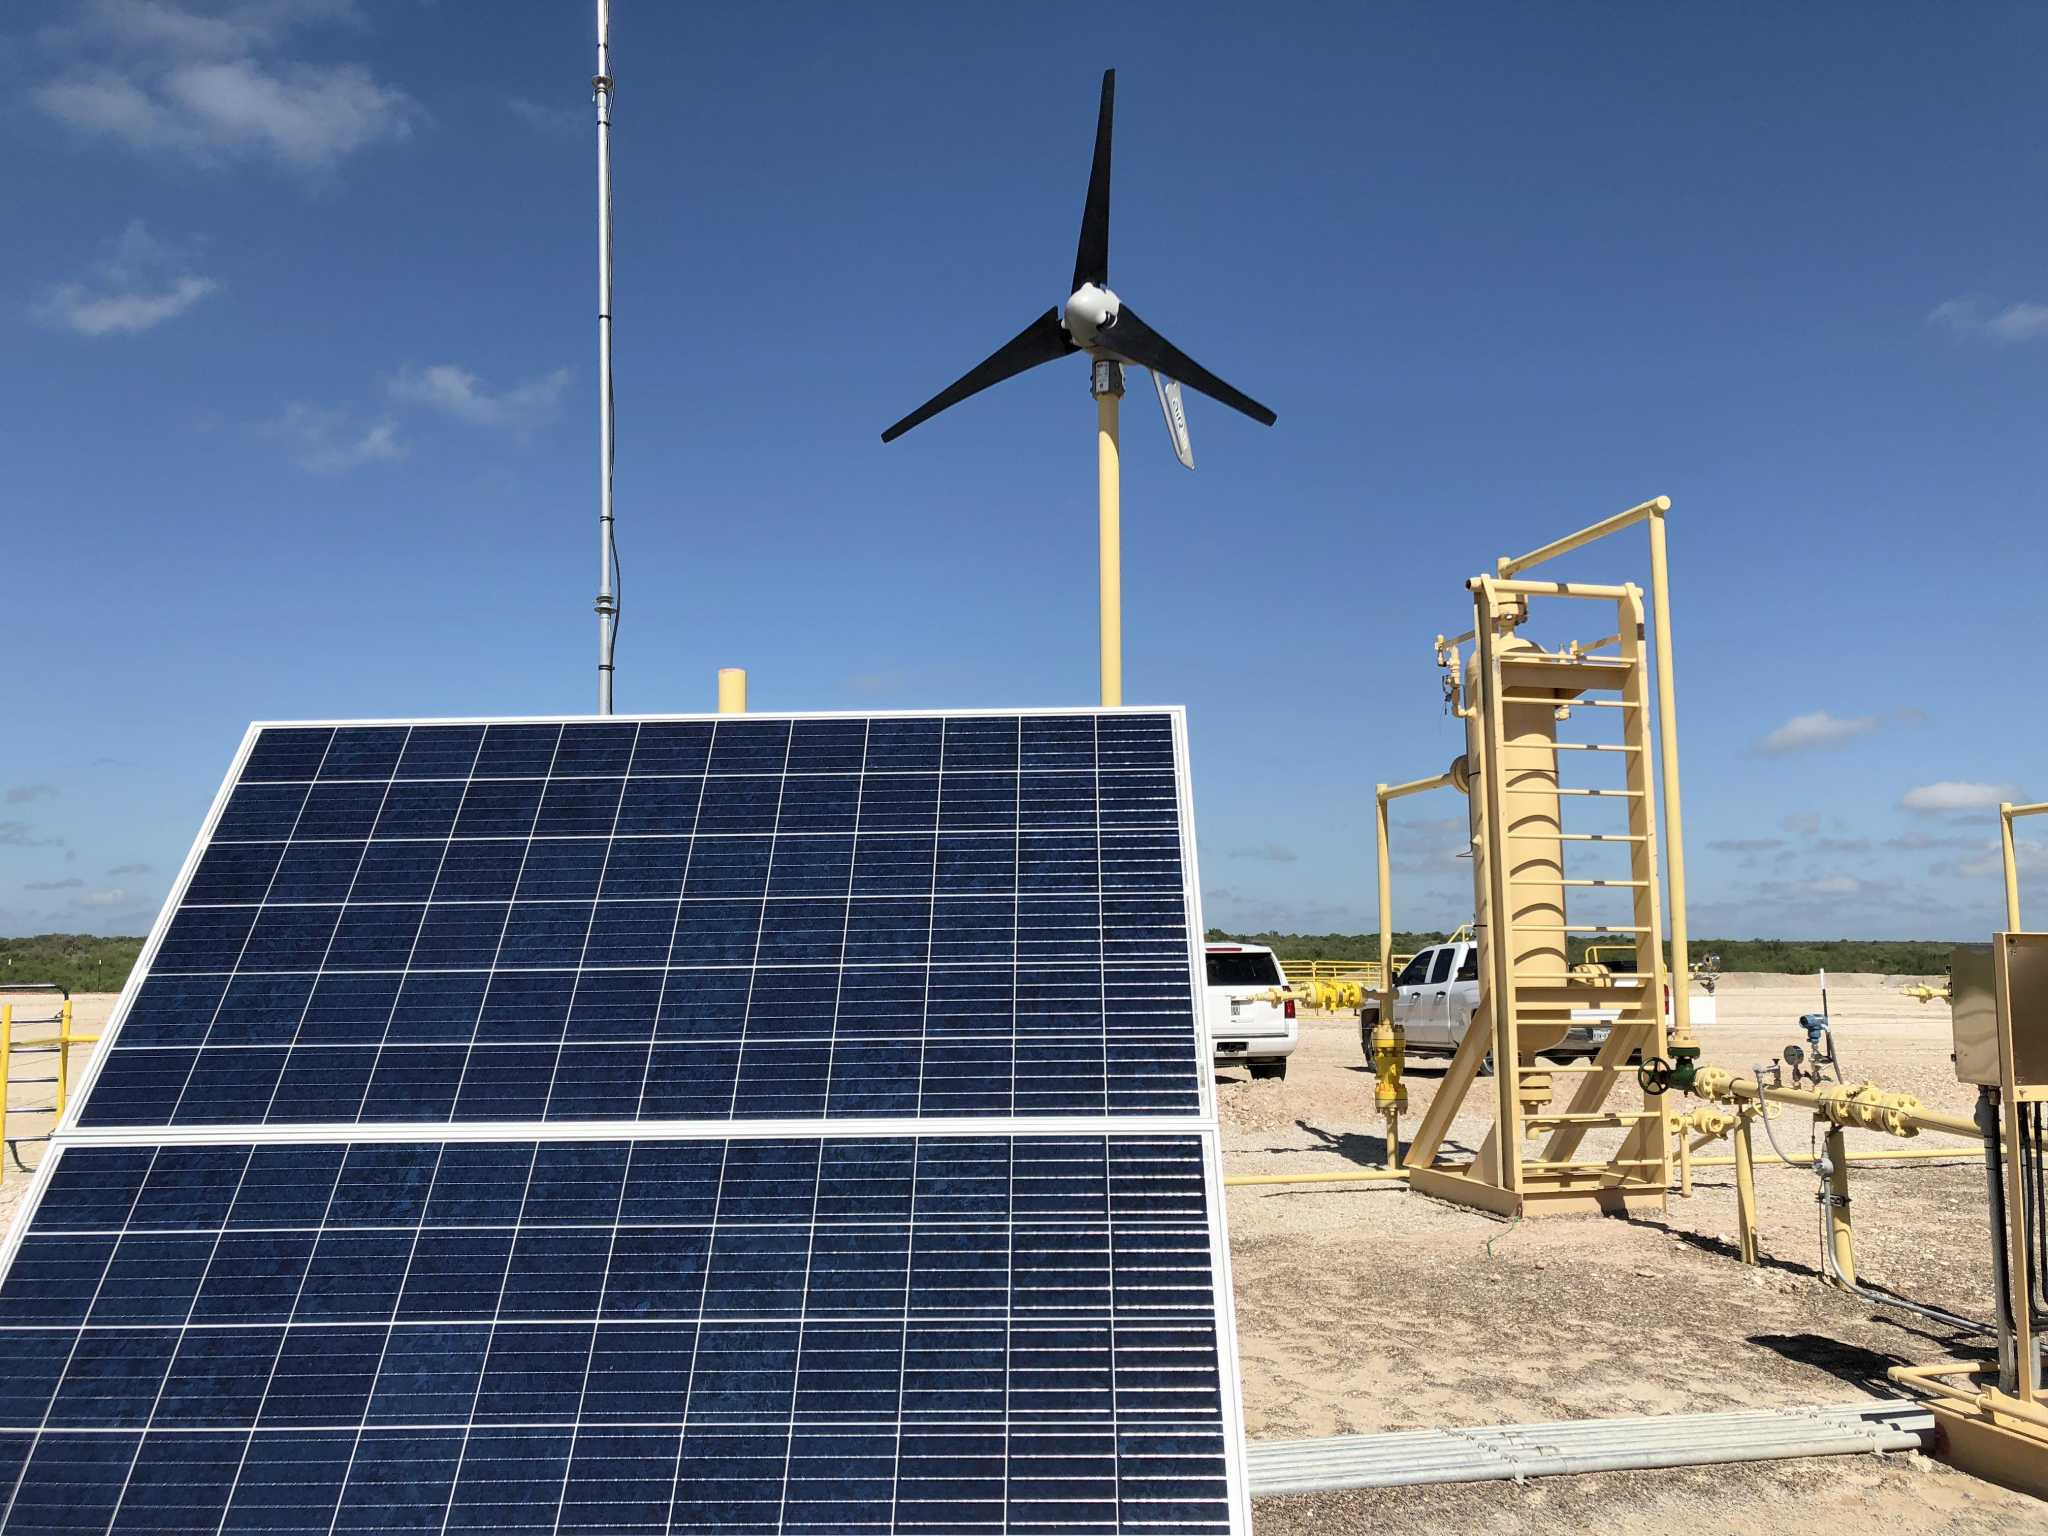 New build costs falling for new solar, wind, gas